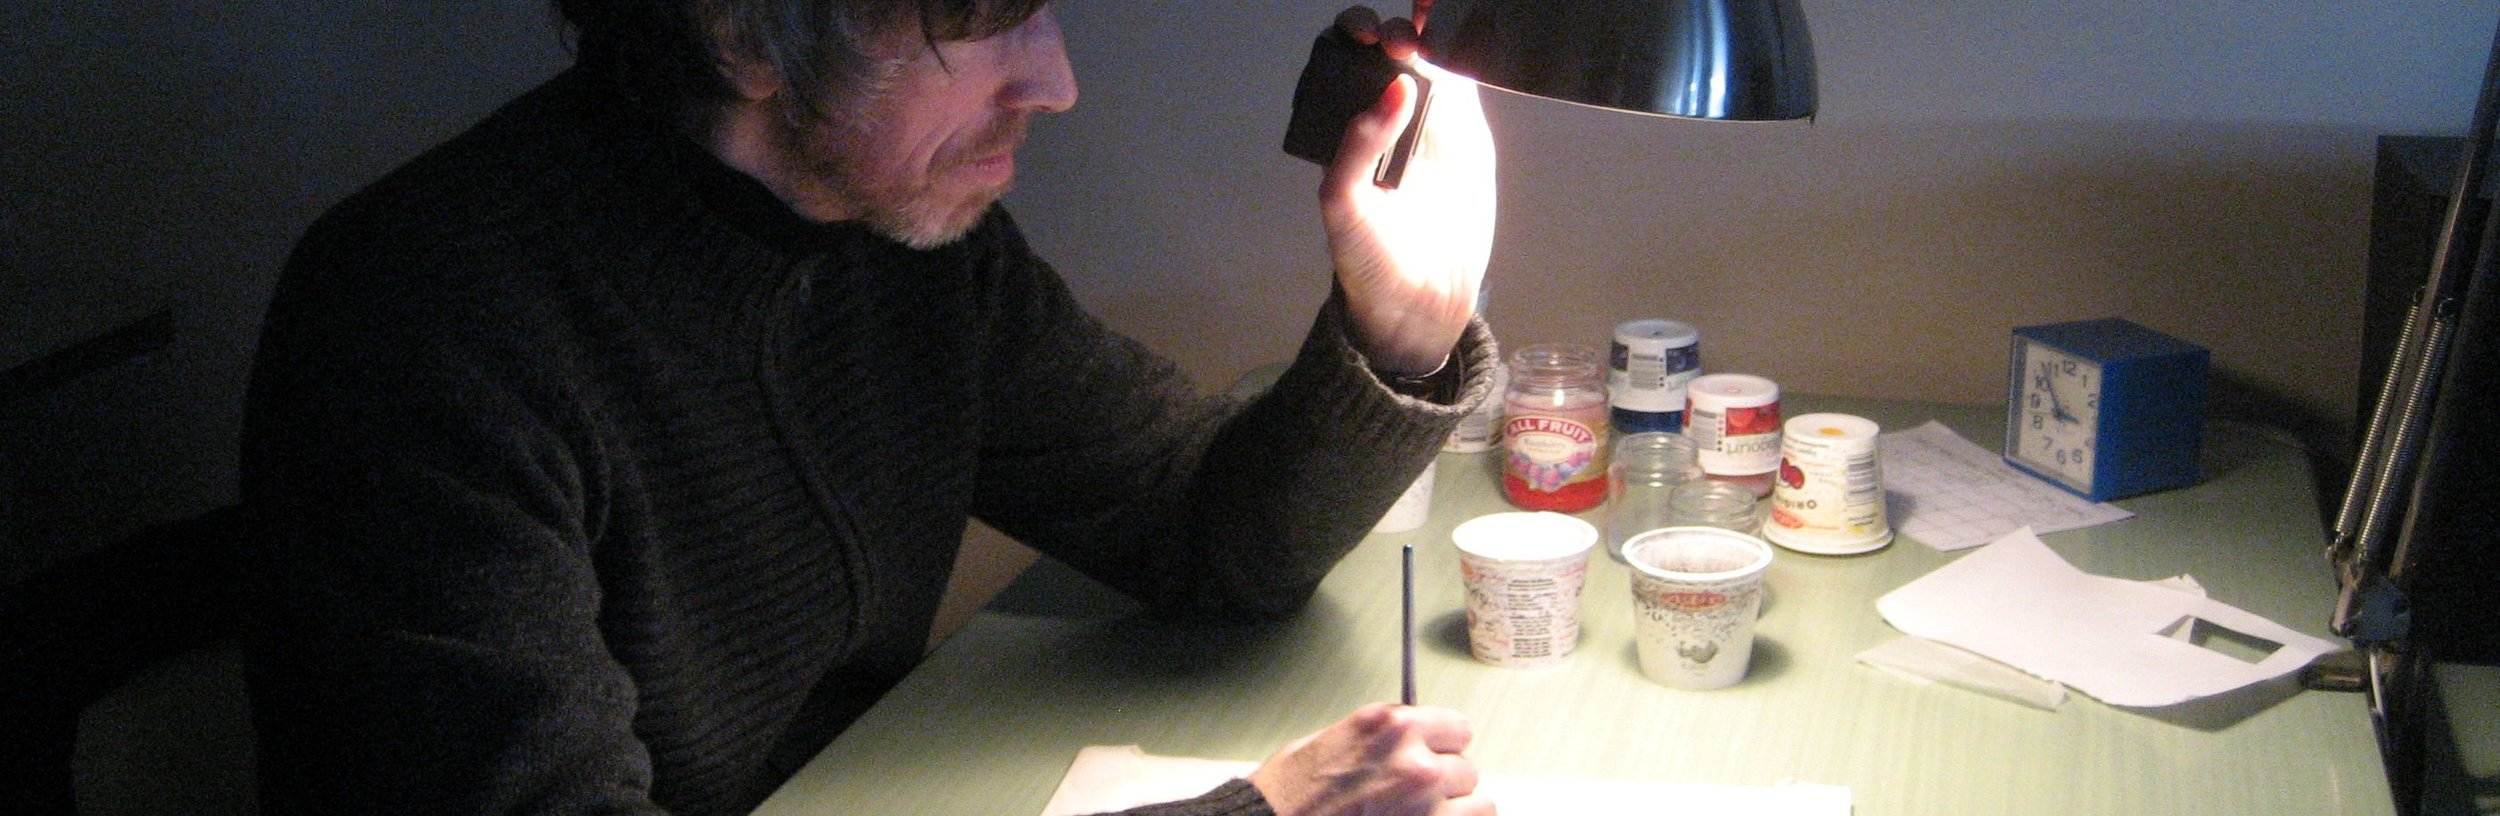 Holding a Slide Viewer, Montreal QC, 2009.